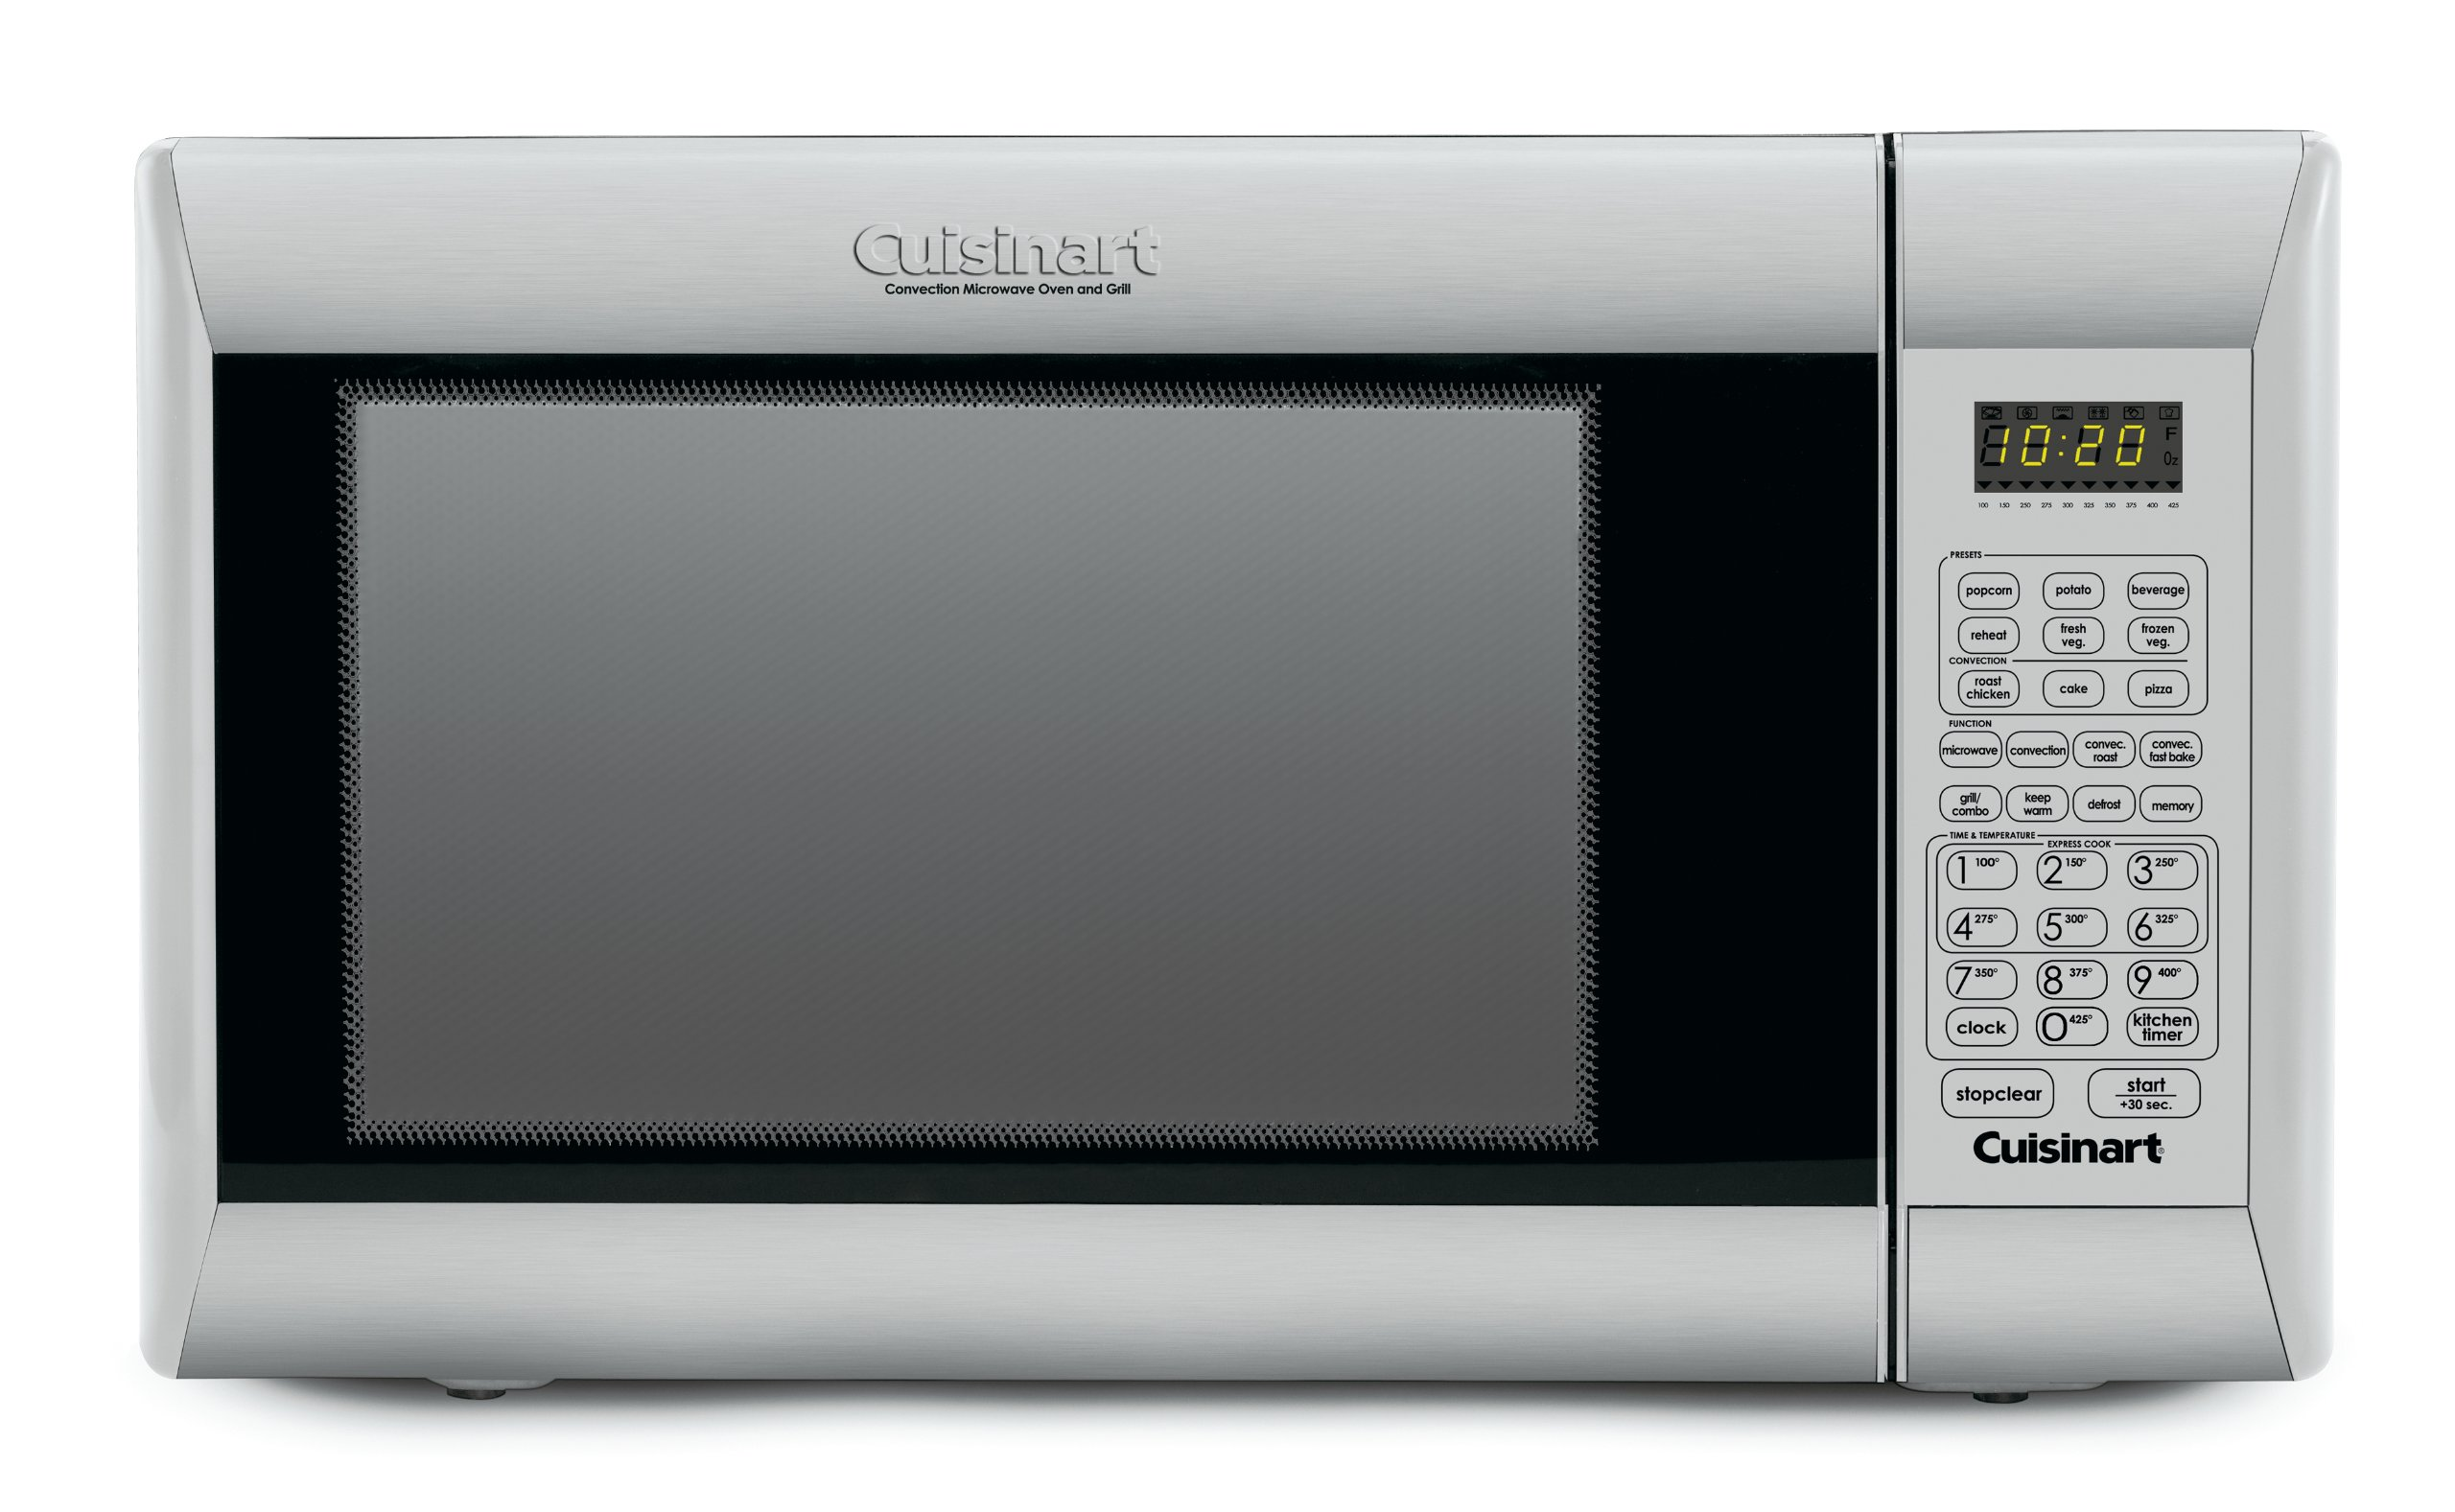 Countertop Microwave Convection Ovens Cuisinart Cmw 200 1 2 Cubic Foot Convection Microwave Oven